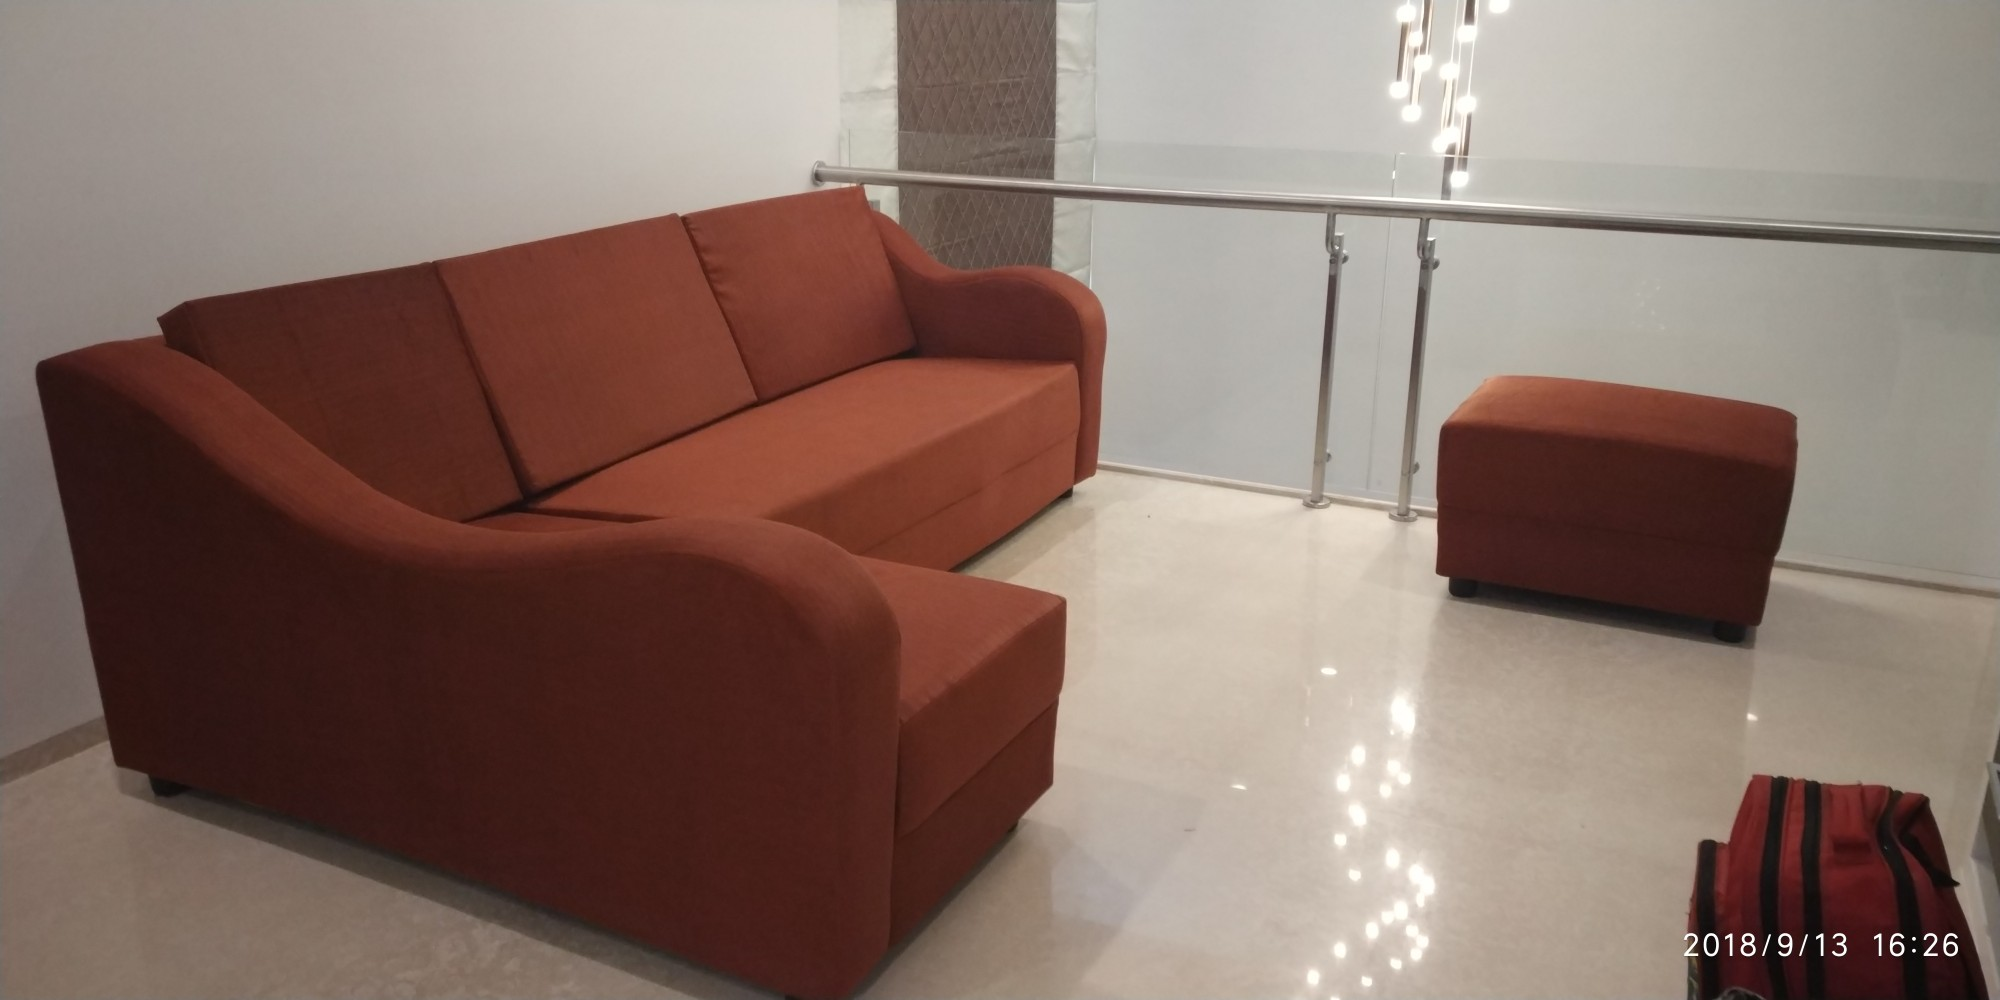 Sofa Service A M Good Looking Sofa Service In Nagavara Bangalore 560064